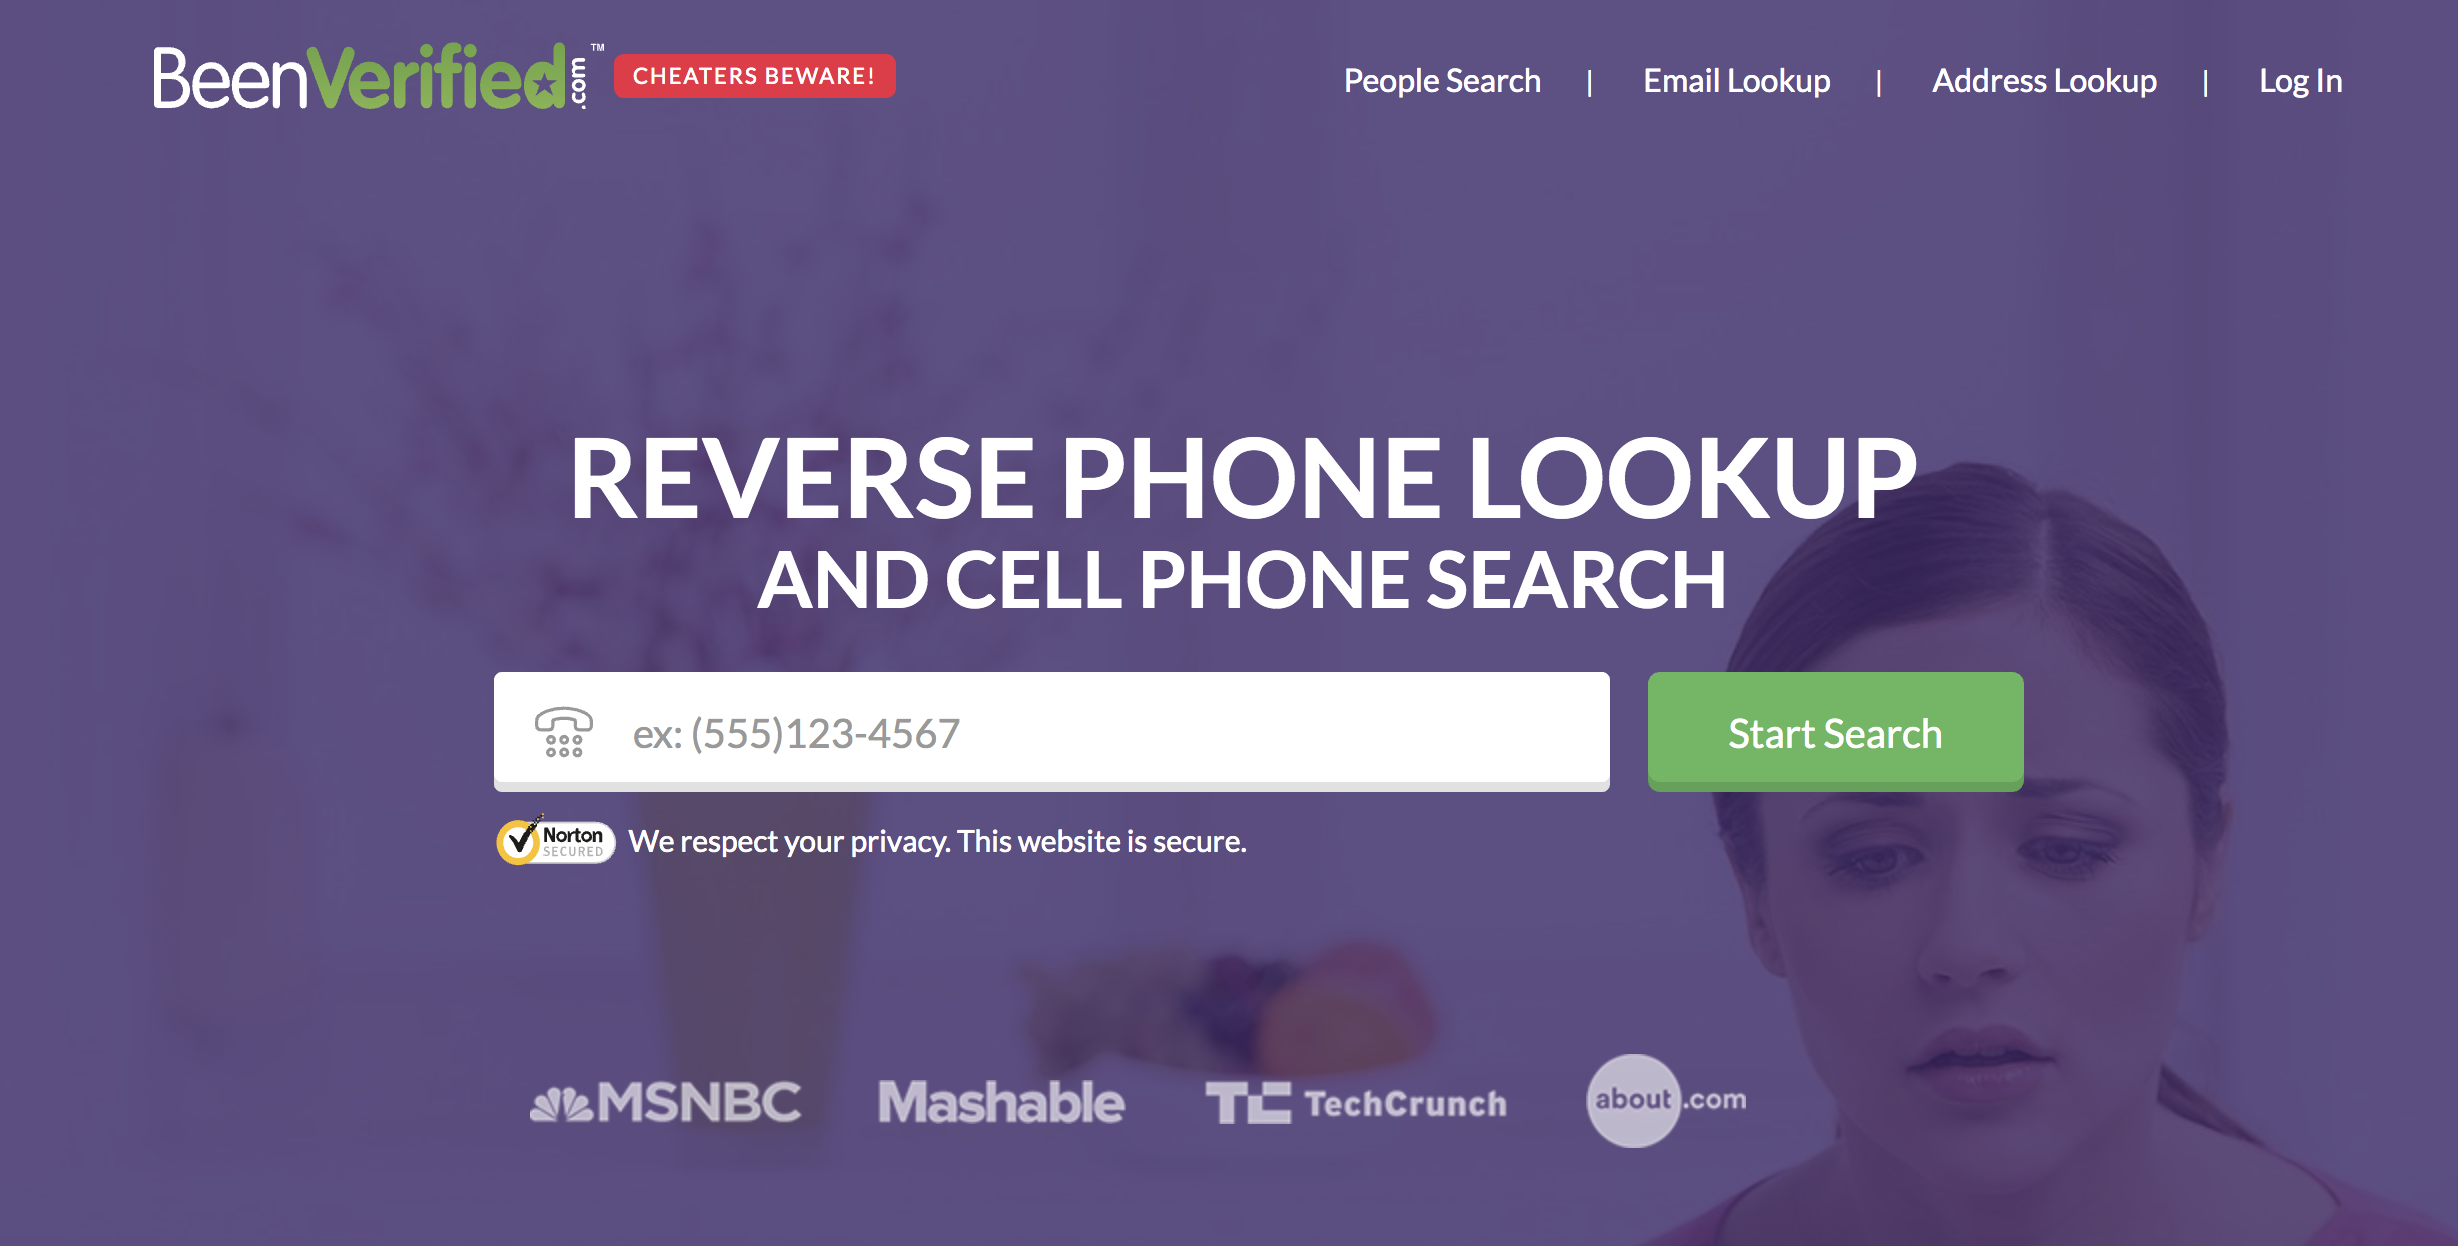 beenverified reverse phone lookup review